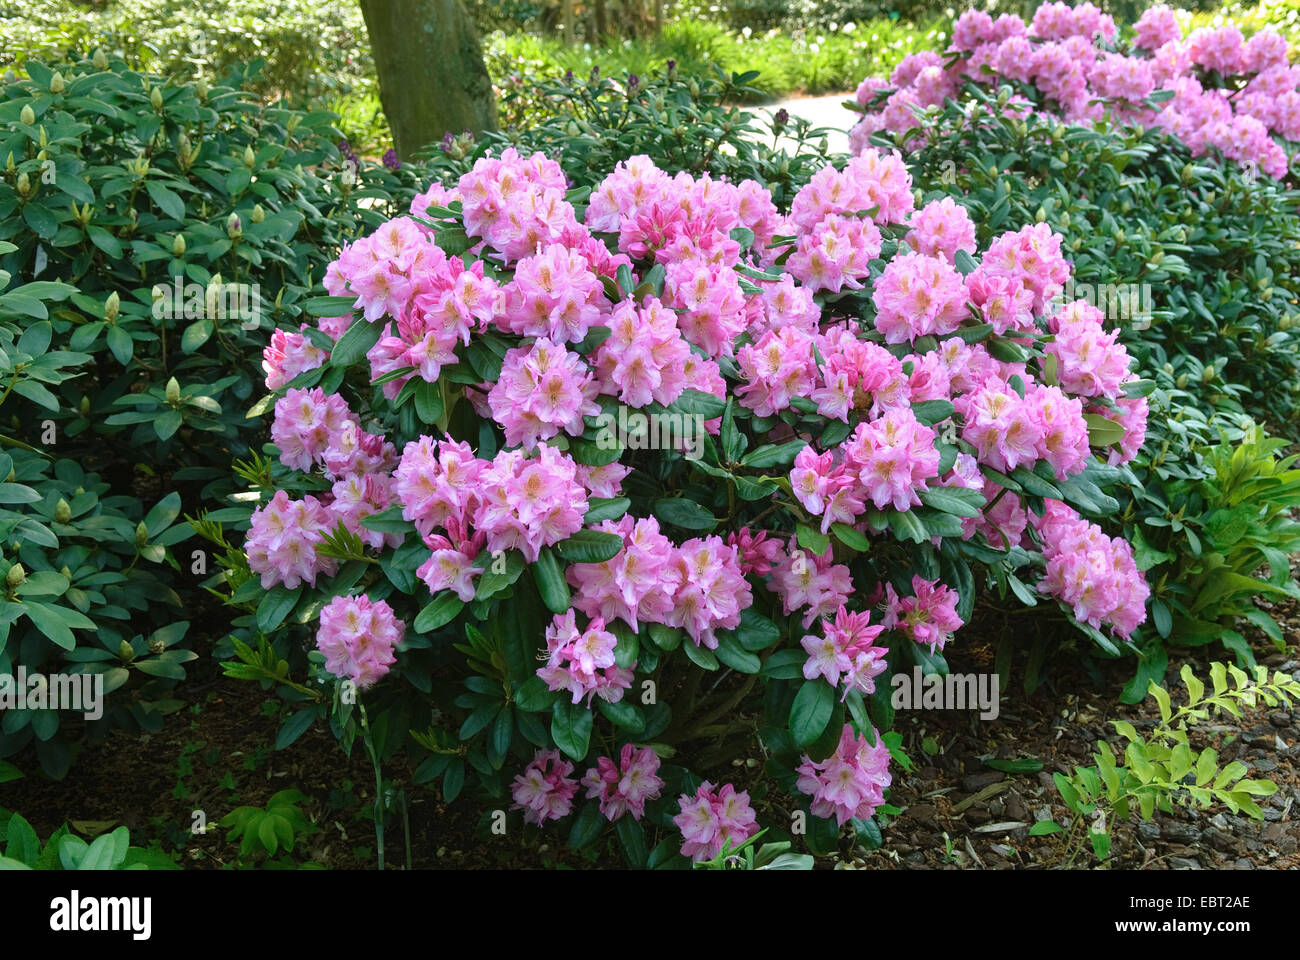 rhododendron (Rhododendron 'Scintillation', Rhododendron Scintillation), cultivar Scintillation - Stock Image